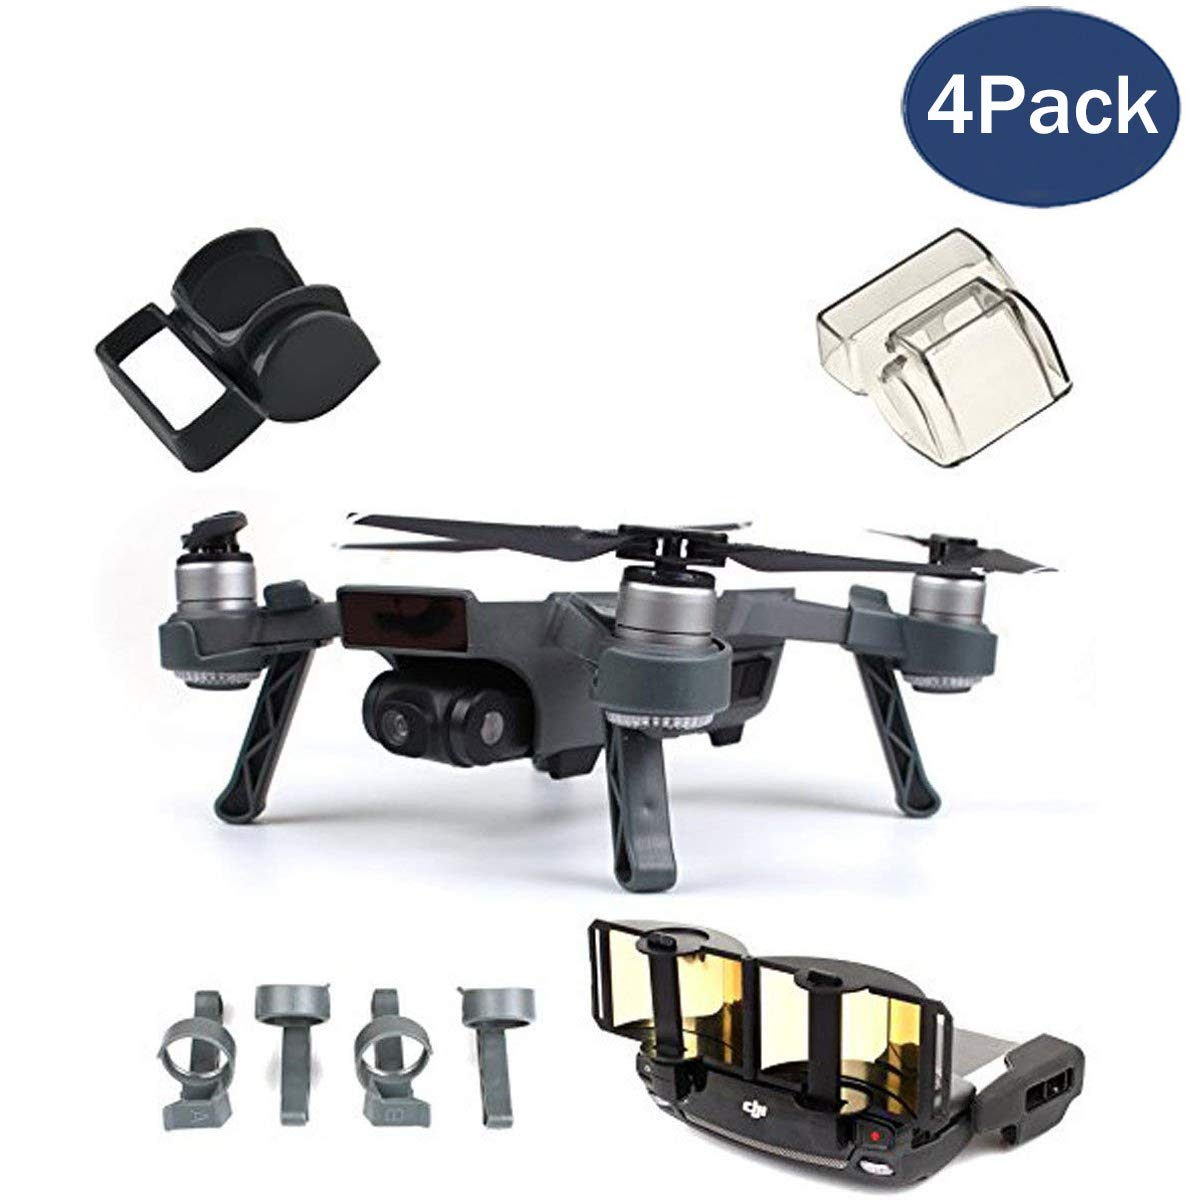 Fstop Labs Accessories Set Bundle Combo for DJI Spark, Lens Cap Hood Sun Shade Camera Cover Protector Landing Gear Antenna Range Booster (4 Pack) by Fstop Labs